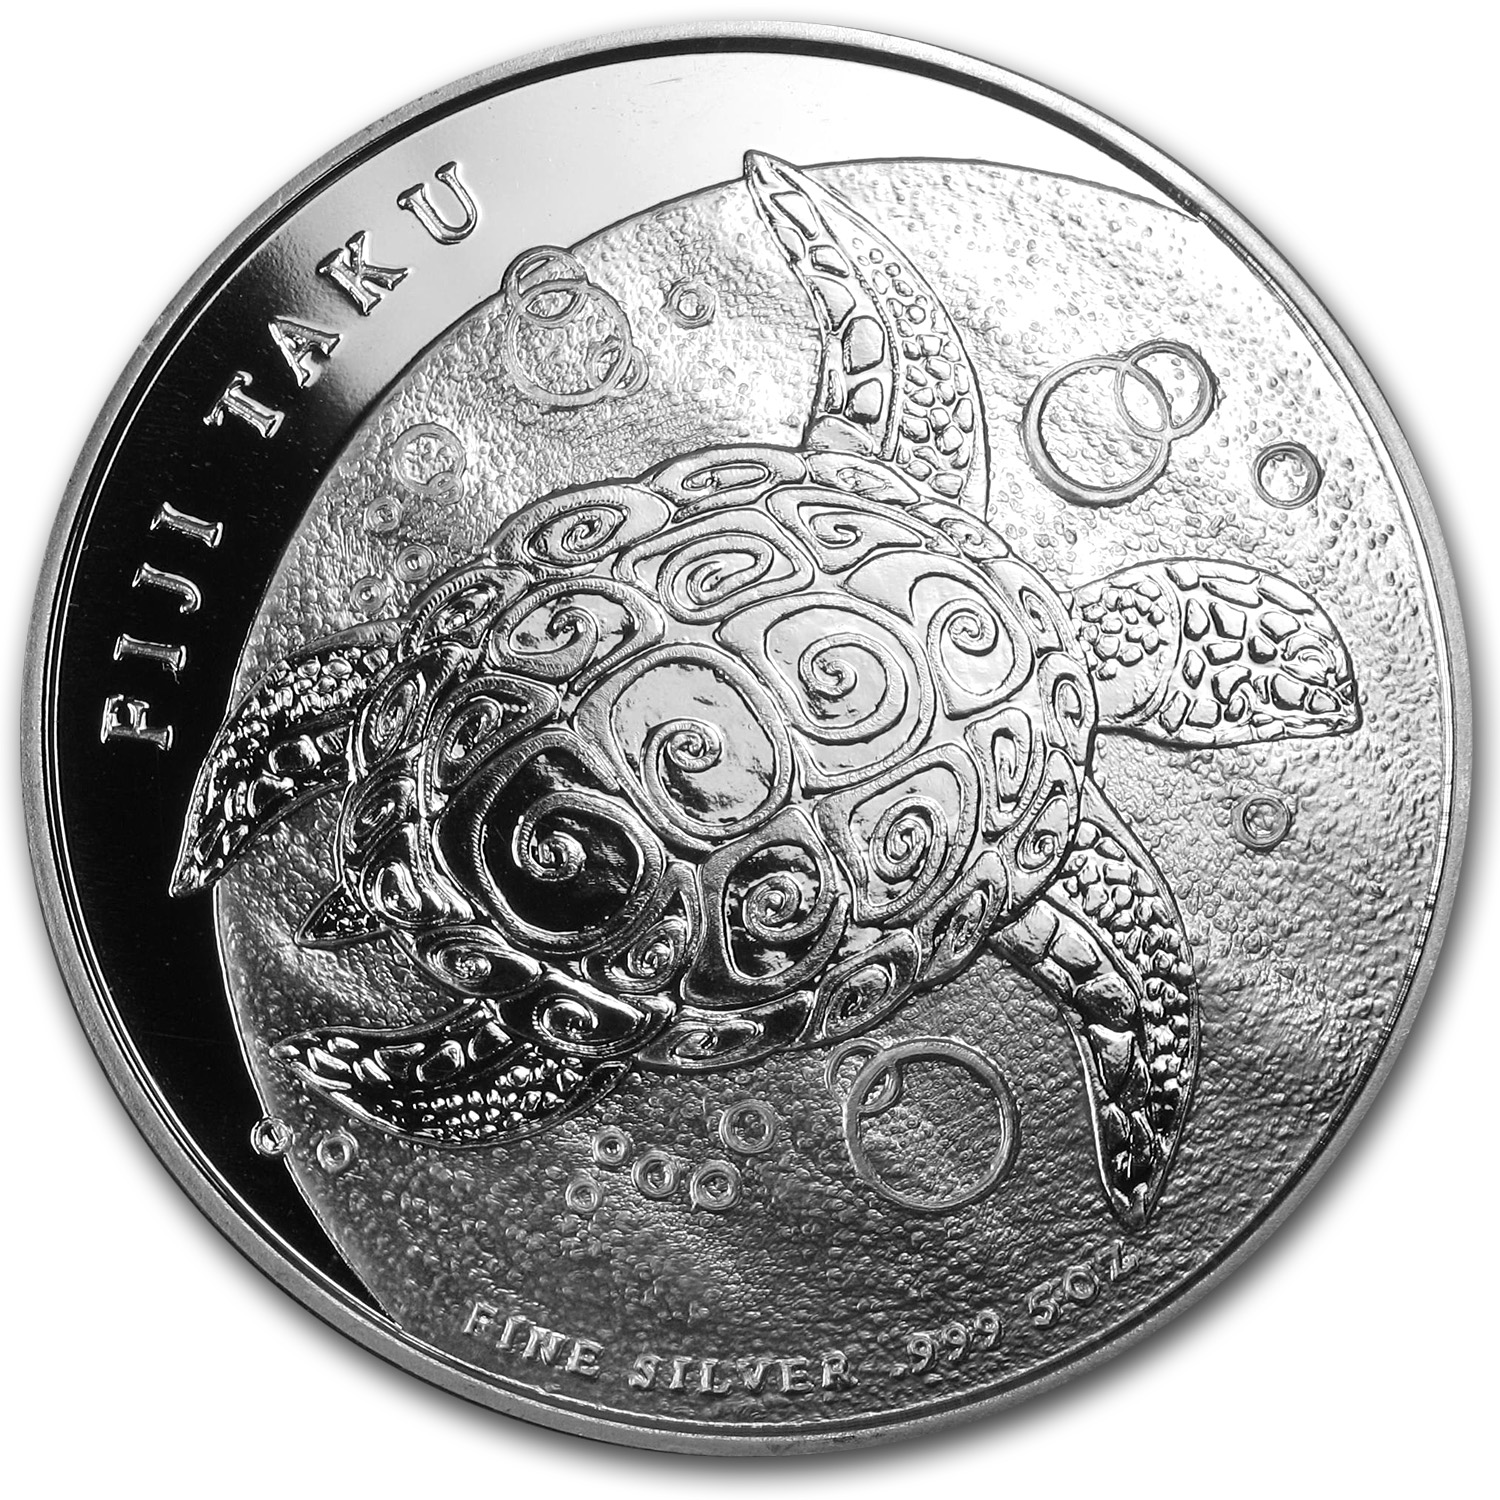 2011 5 oz Silver New Zealand Mint $10 Fiji Taku .999